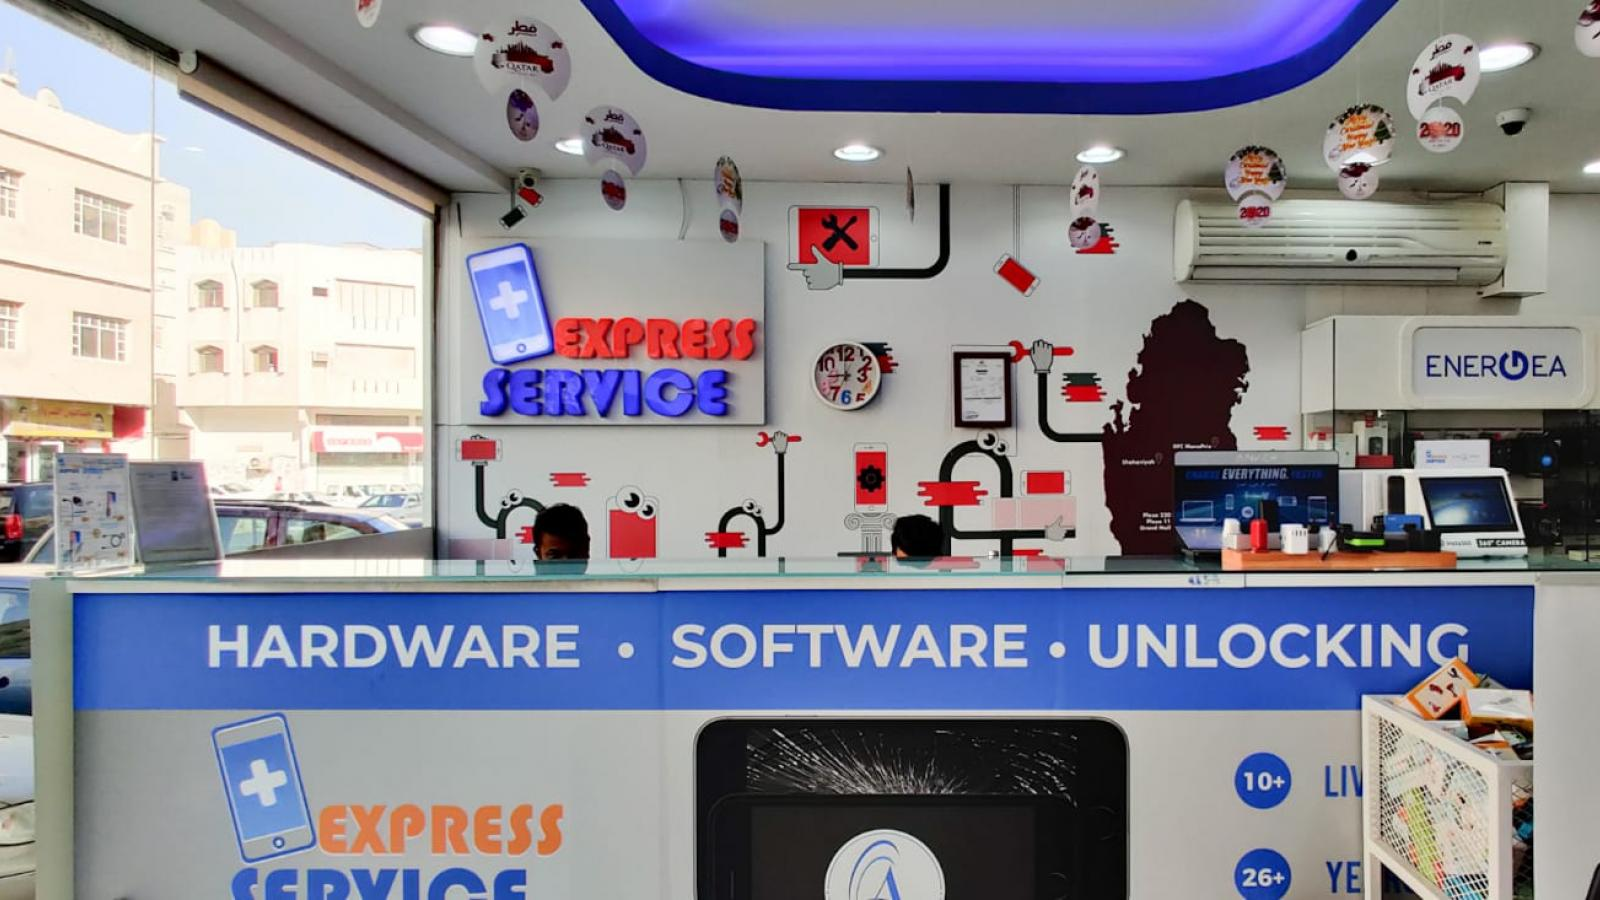 Al Anees Qatar's Express Service offers mobile repairs within 30 minutes